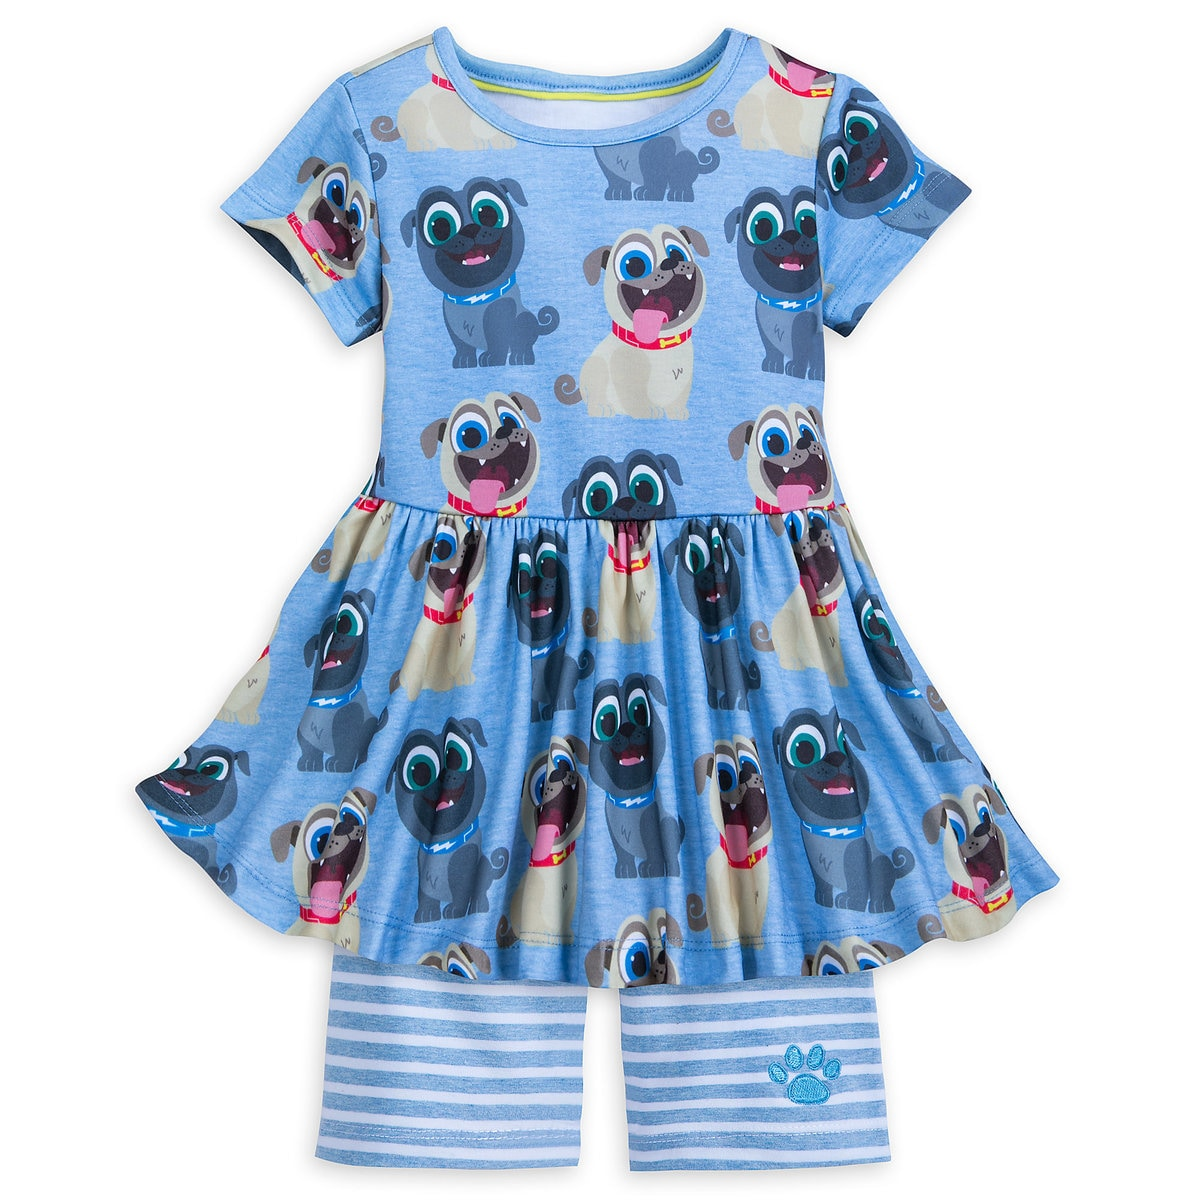 Puppy Dog Pals Dress Set for Girls | shopDisney